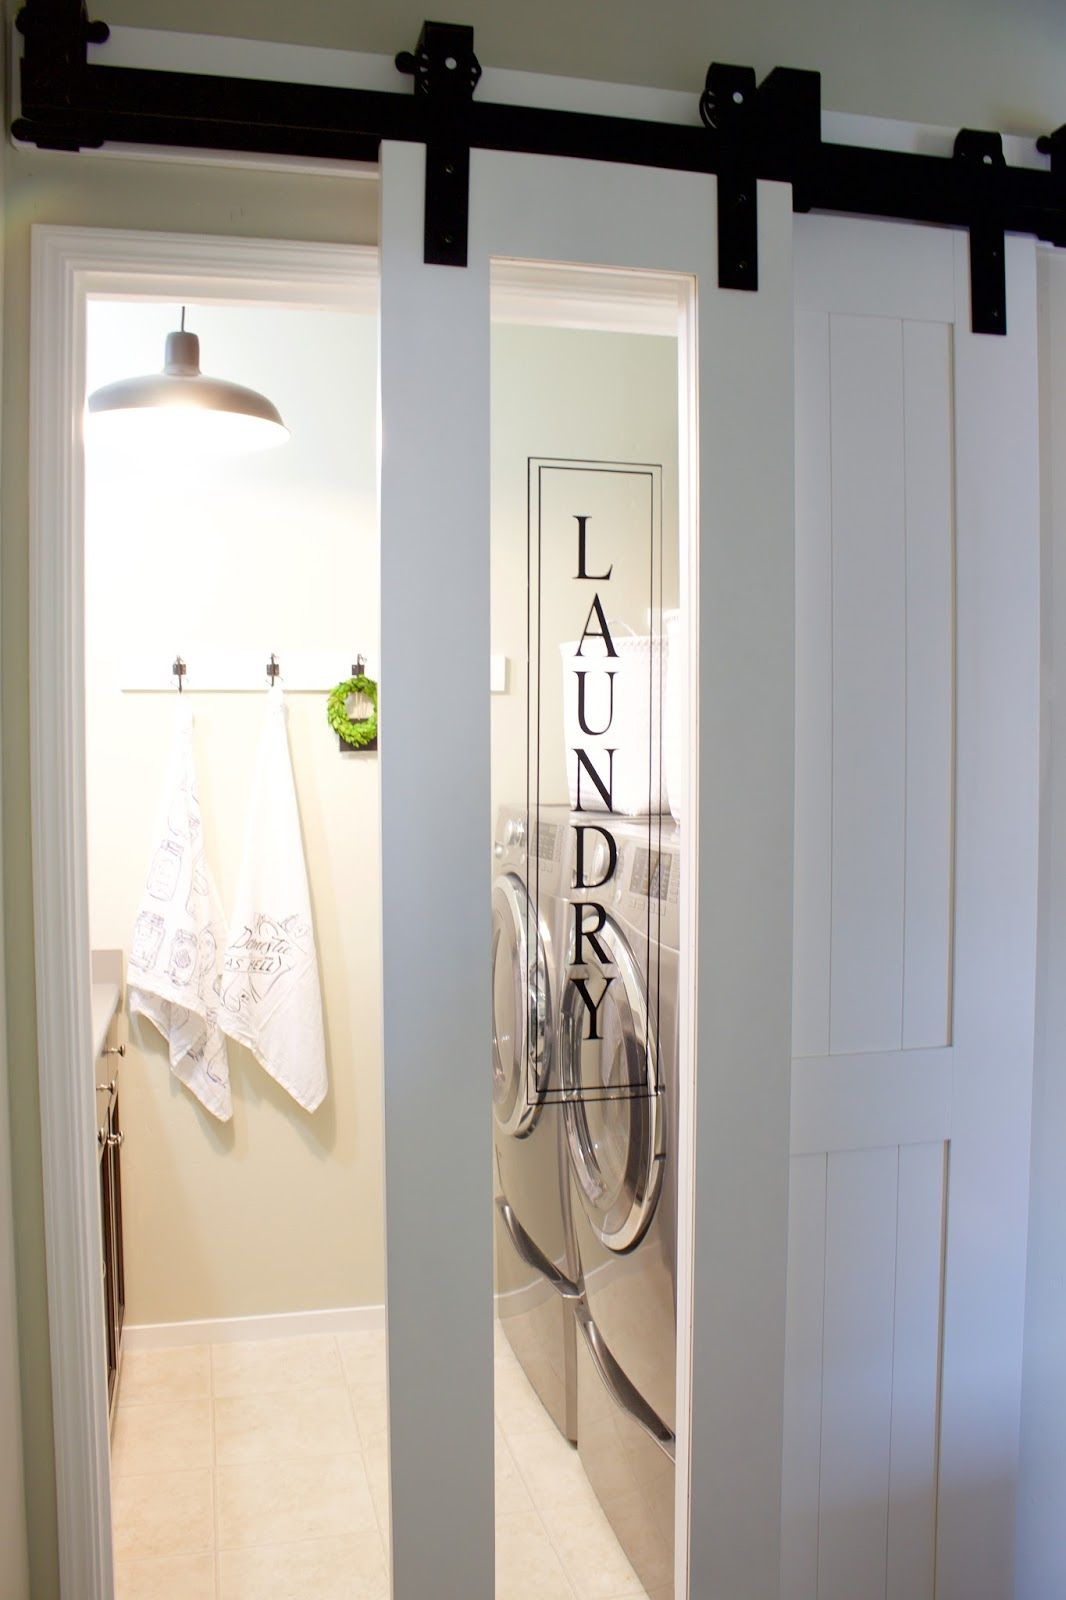 Laundry Room Barn Door Laundry Room Inspiration Laundry